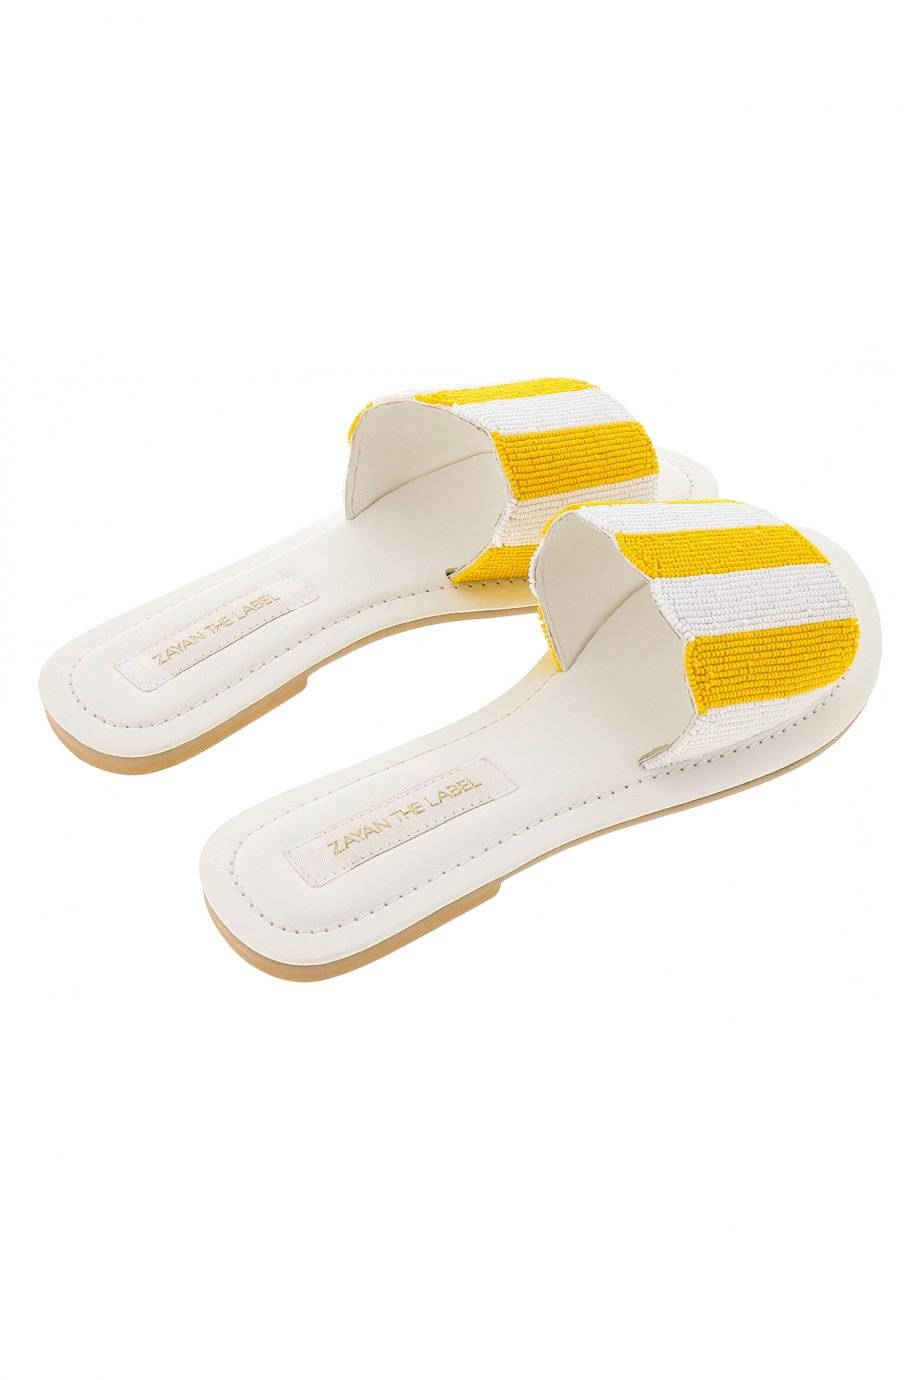 POSITANO YELLOW SLIDES